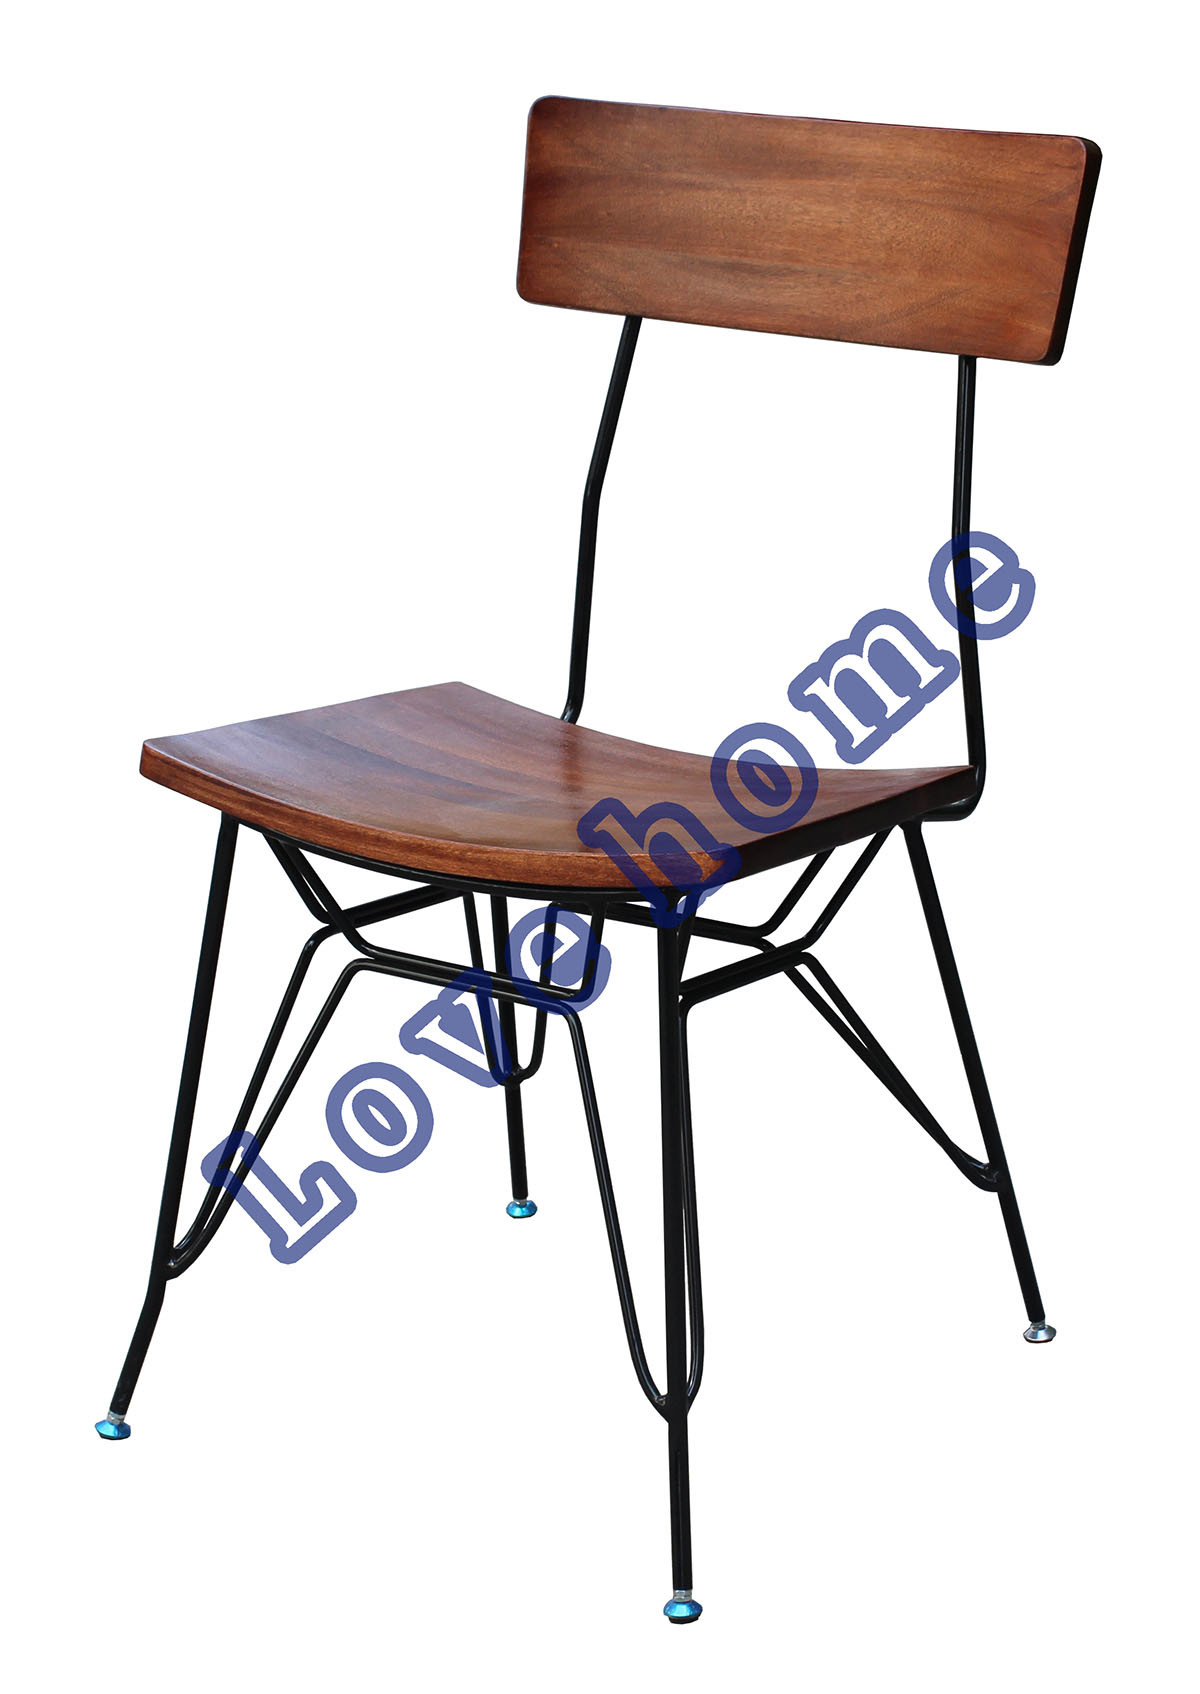 China Industrial Metal Dining Restaurant Furniture Wooden Chair